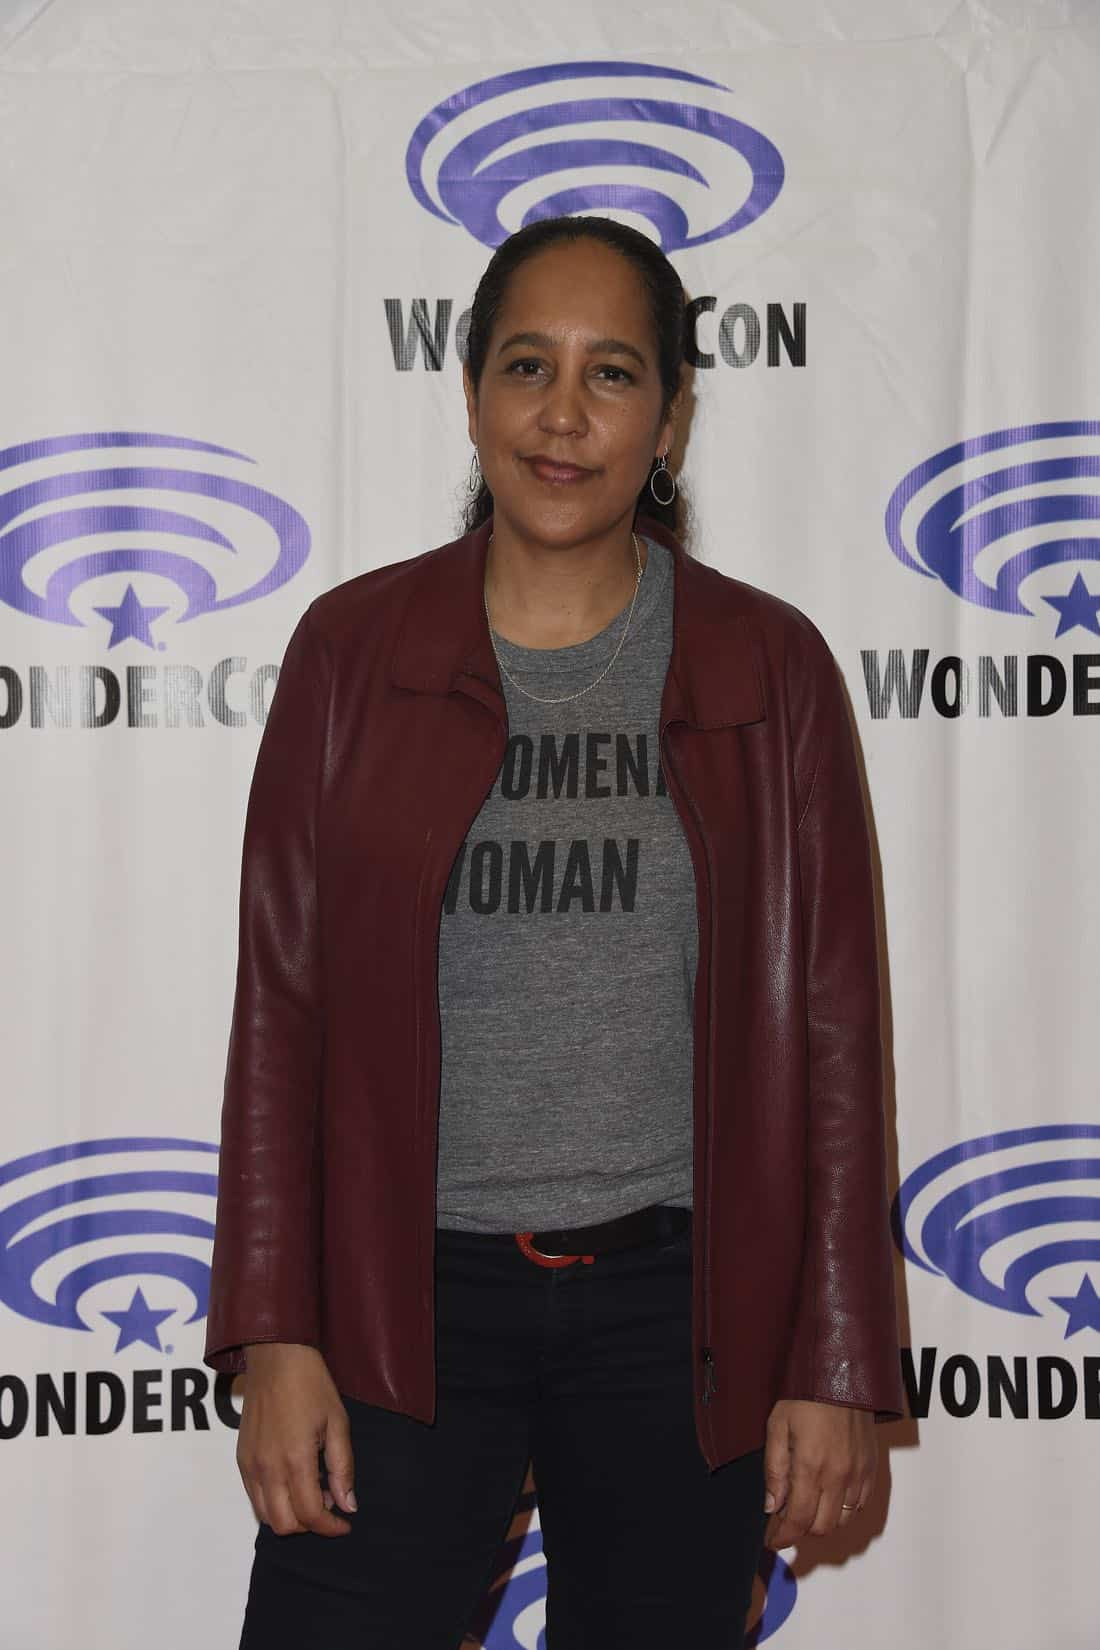 "MARVEL'S CLOAK & DAGGER - The executive producers and cast of Freeform's highly-anticipated new original series ""Marvel's Cloak & Dagger"" attended WonderCon to promote the June 7th premiere. (Freeform/Aaron Poole) GINA PRINCE-BYTHEWOOD (DIRECTOR)"